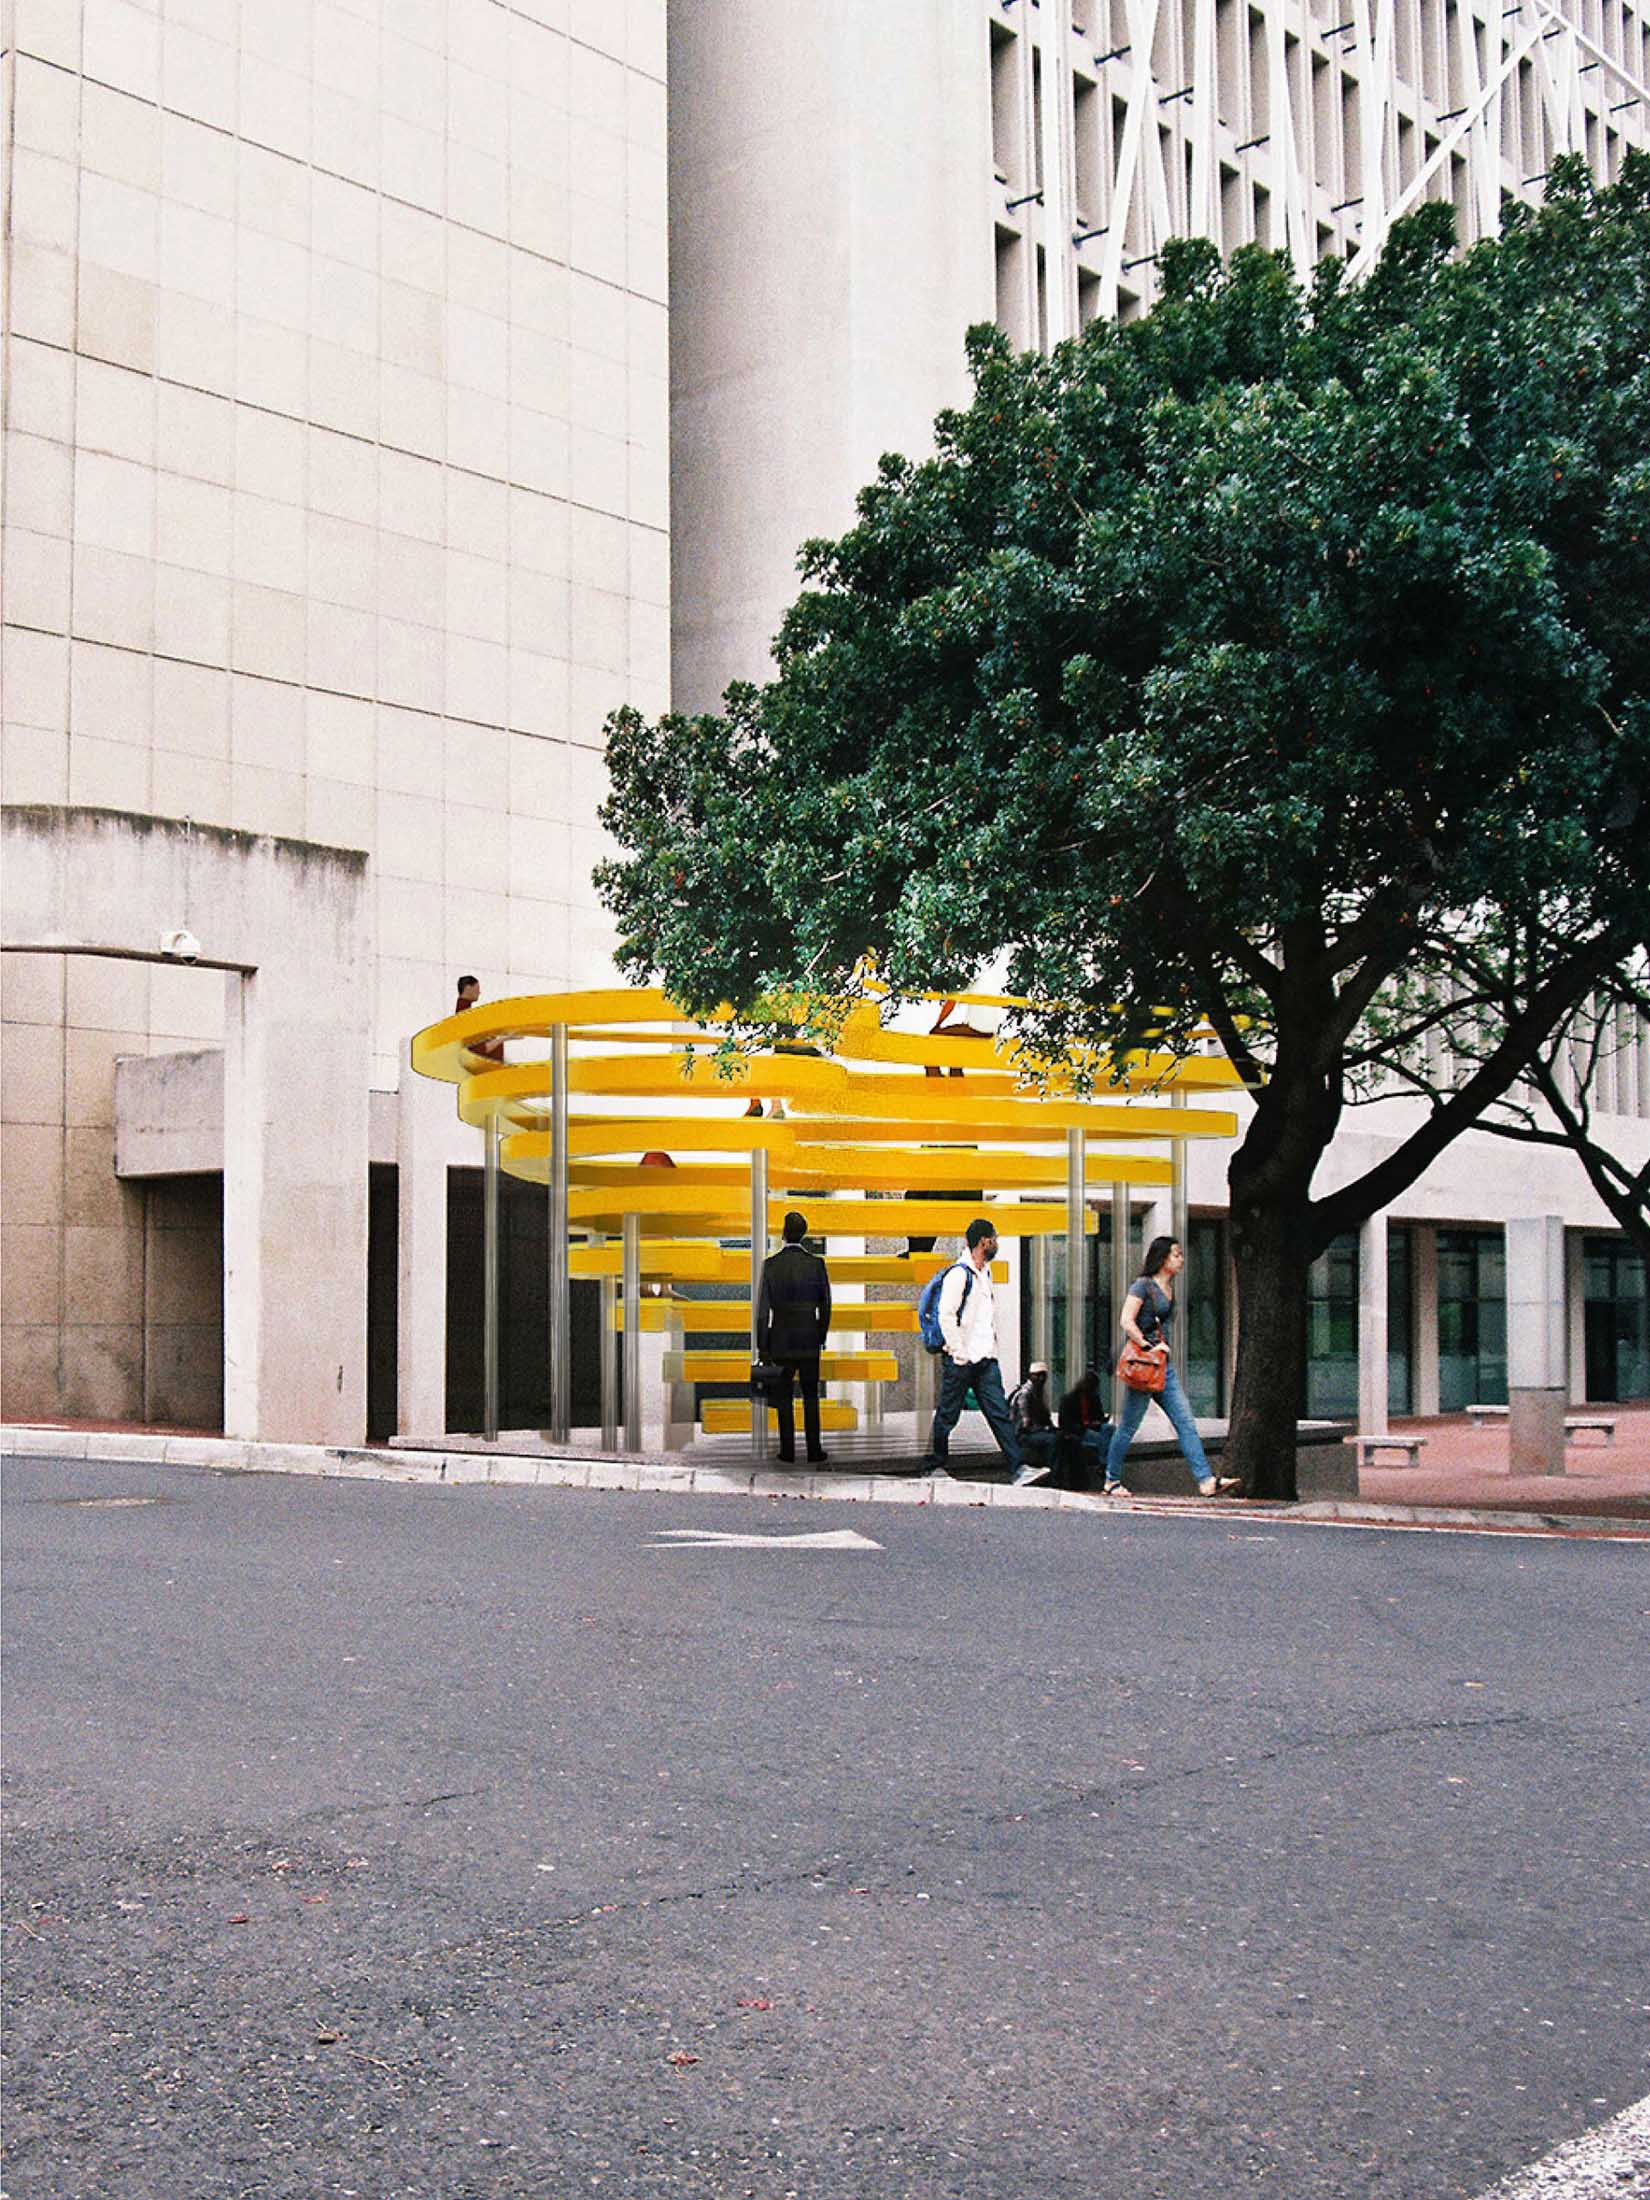 The People's Sculpture concept on long street